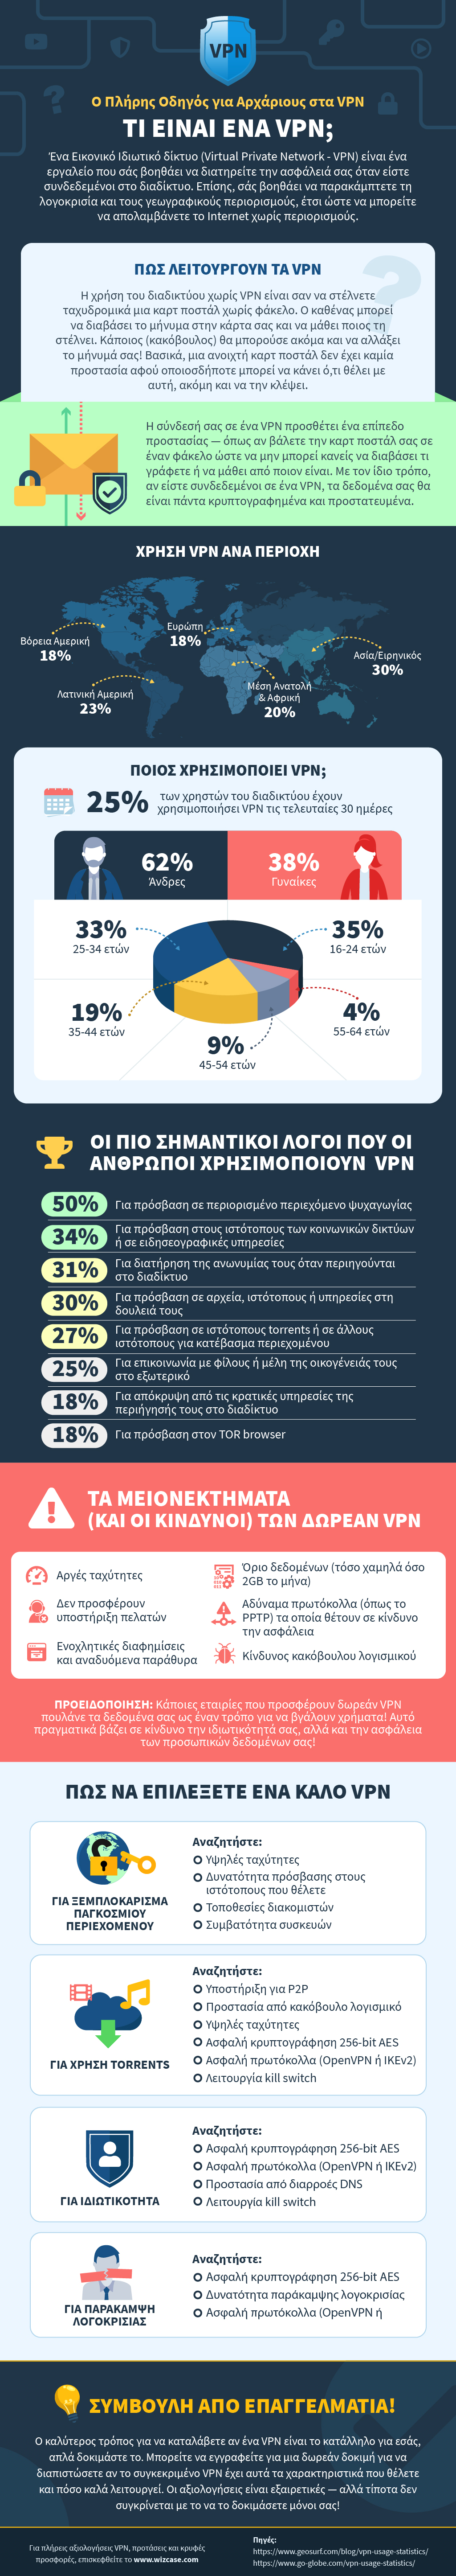 infographic guide to what is a VPN in Greek